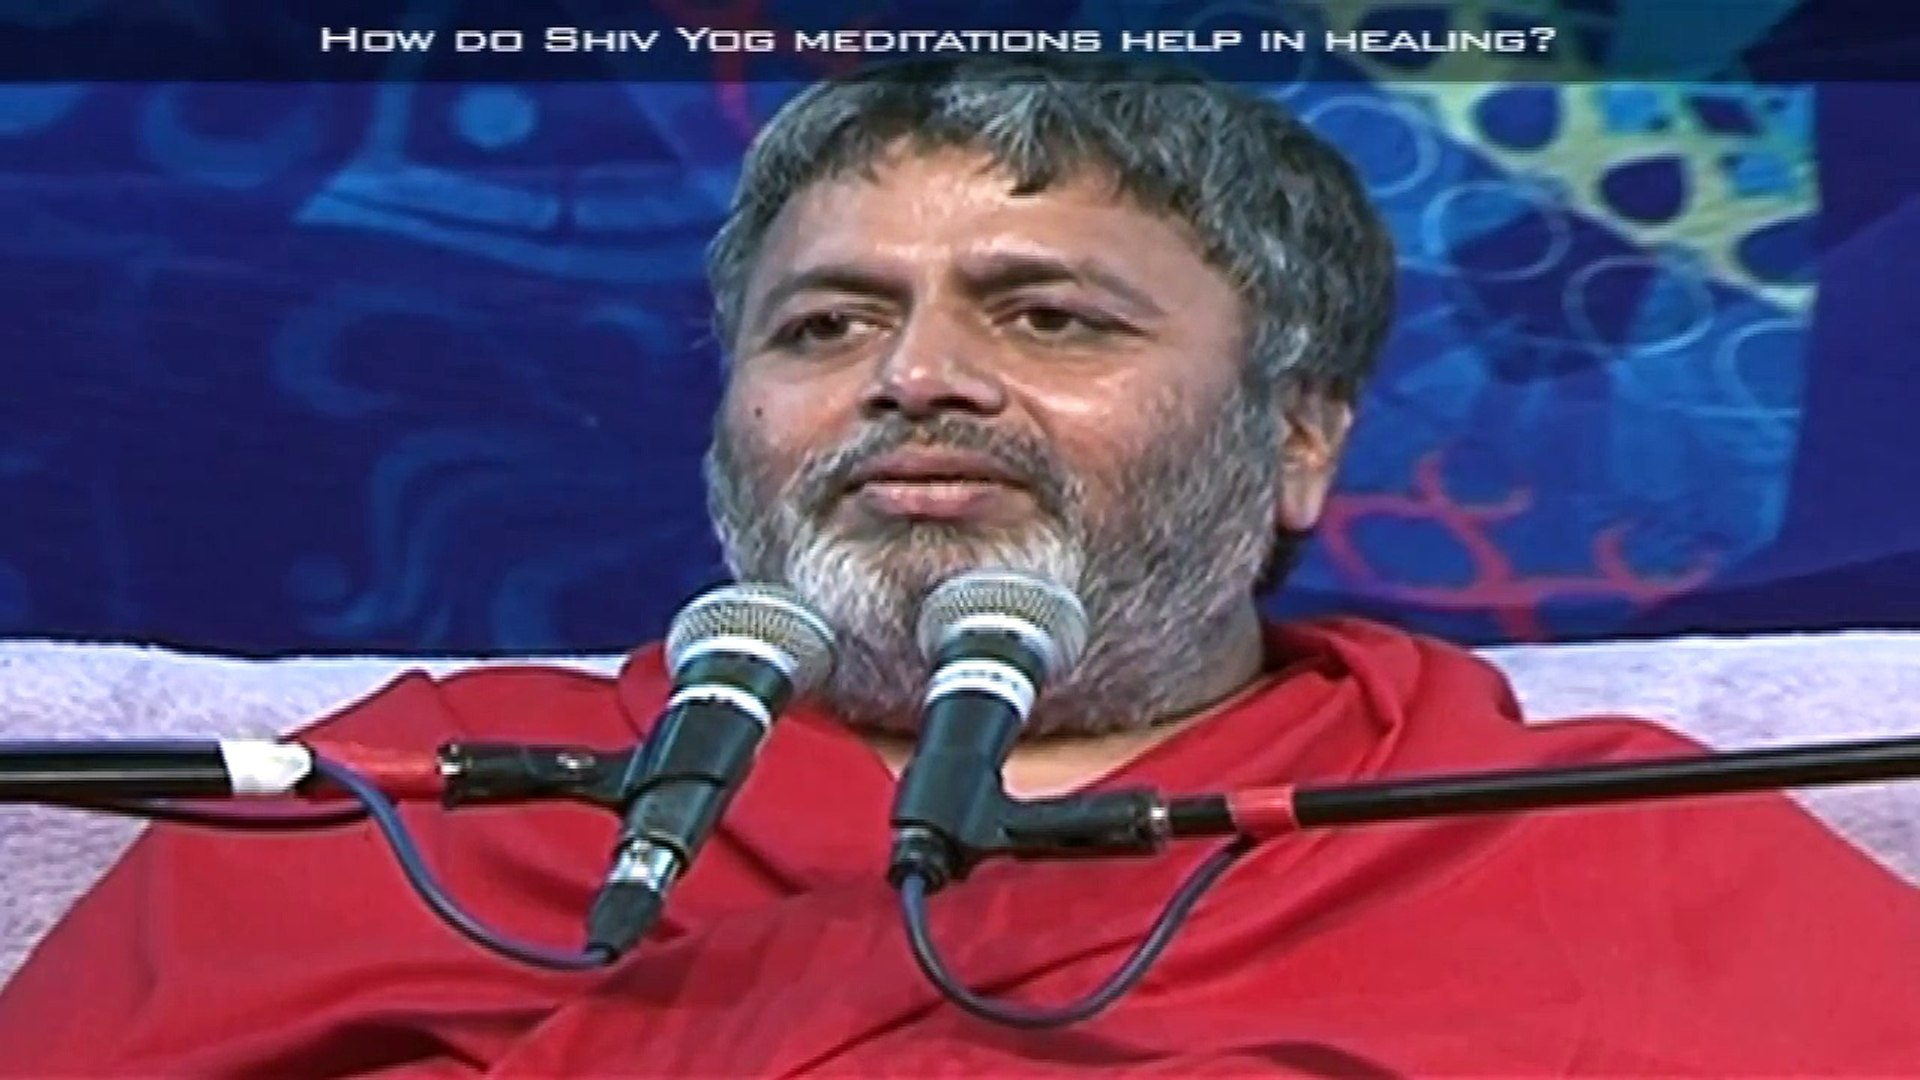 How does ShivYog meditations help in healing